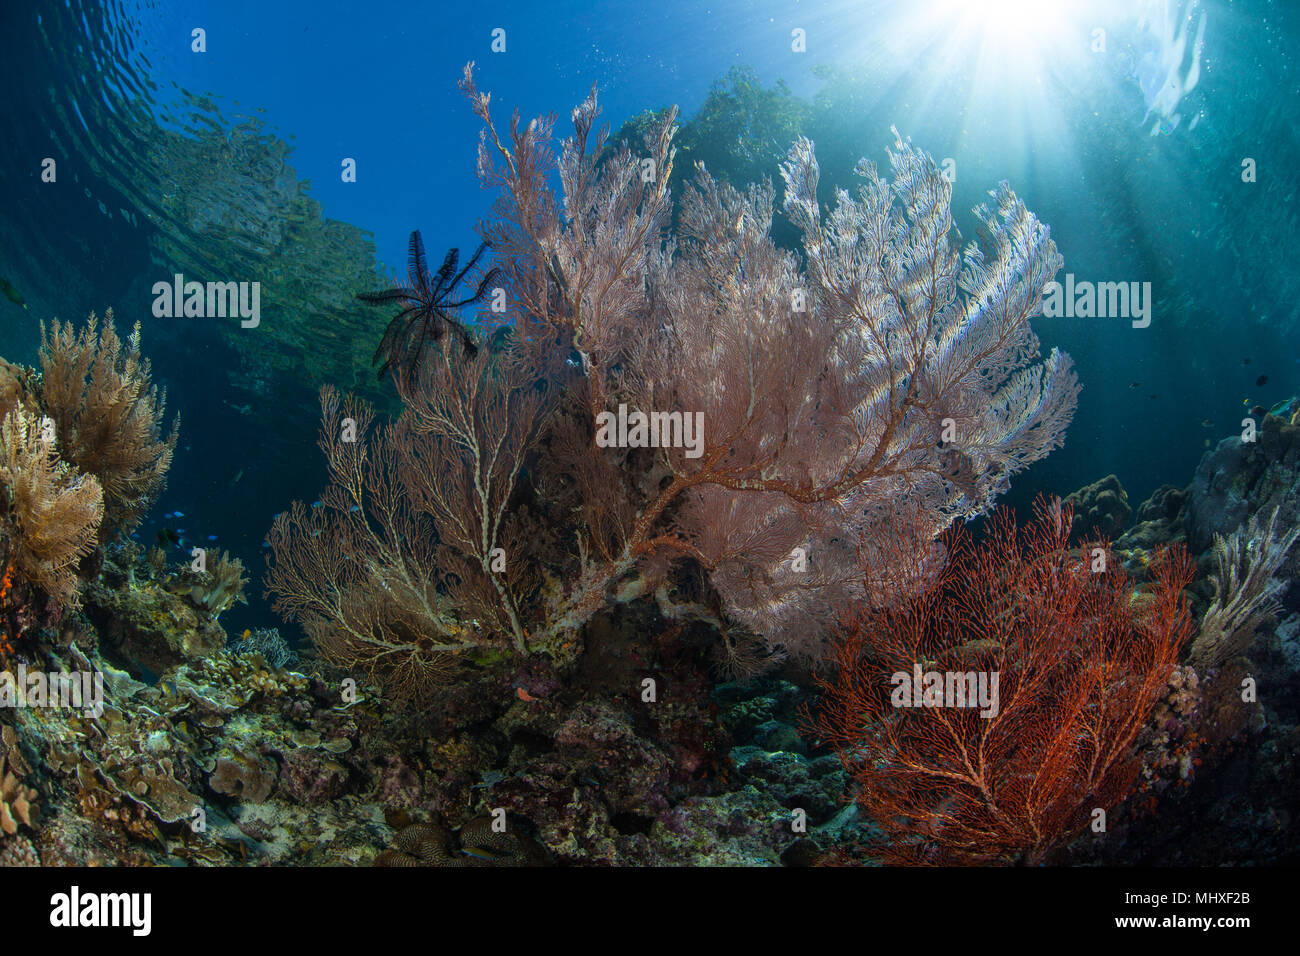 Sunlight shines on beautiful gorgonians in Raja Ampat, Indonesia. This remote region is known as the heart of marine biodiversity. - Stock Image